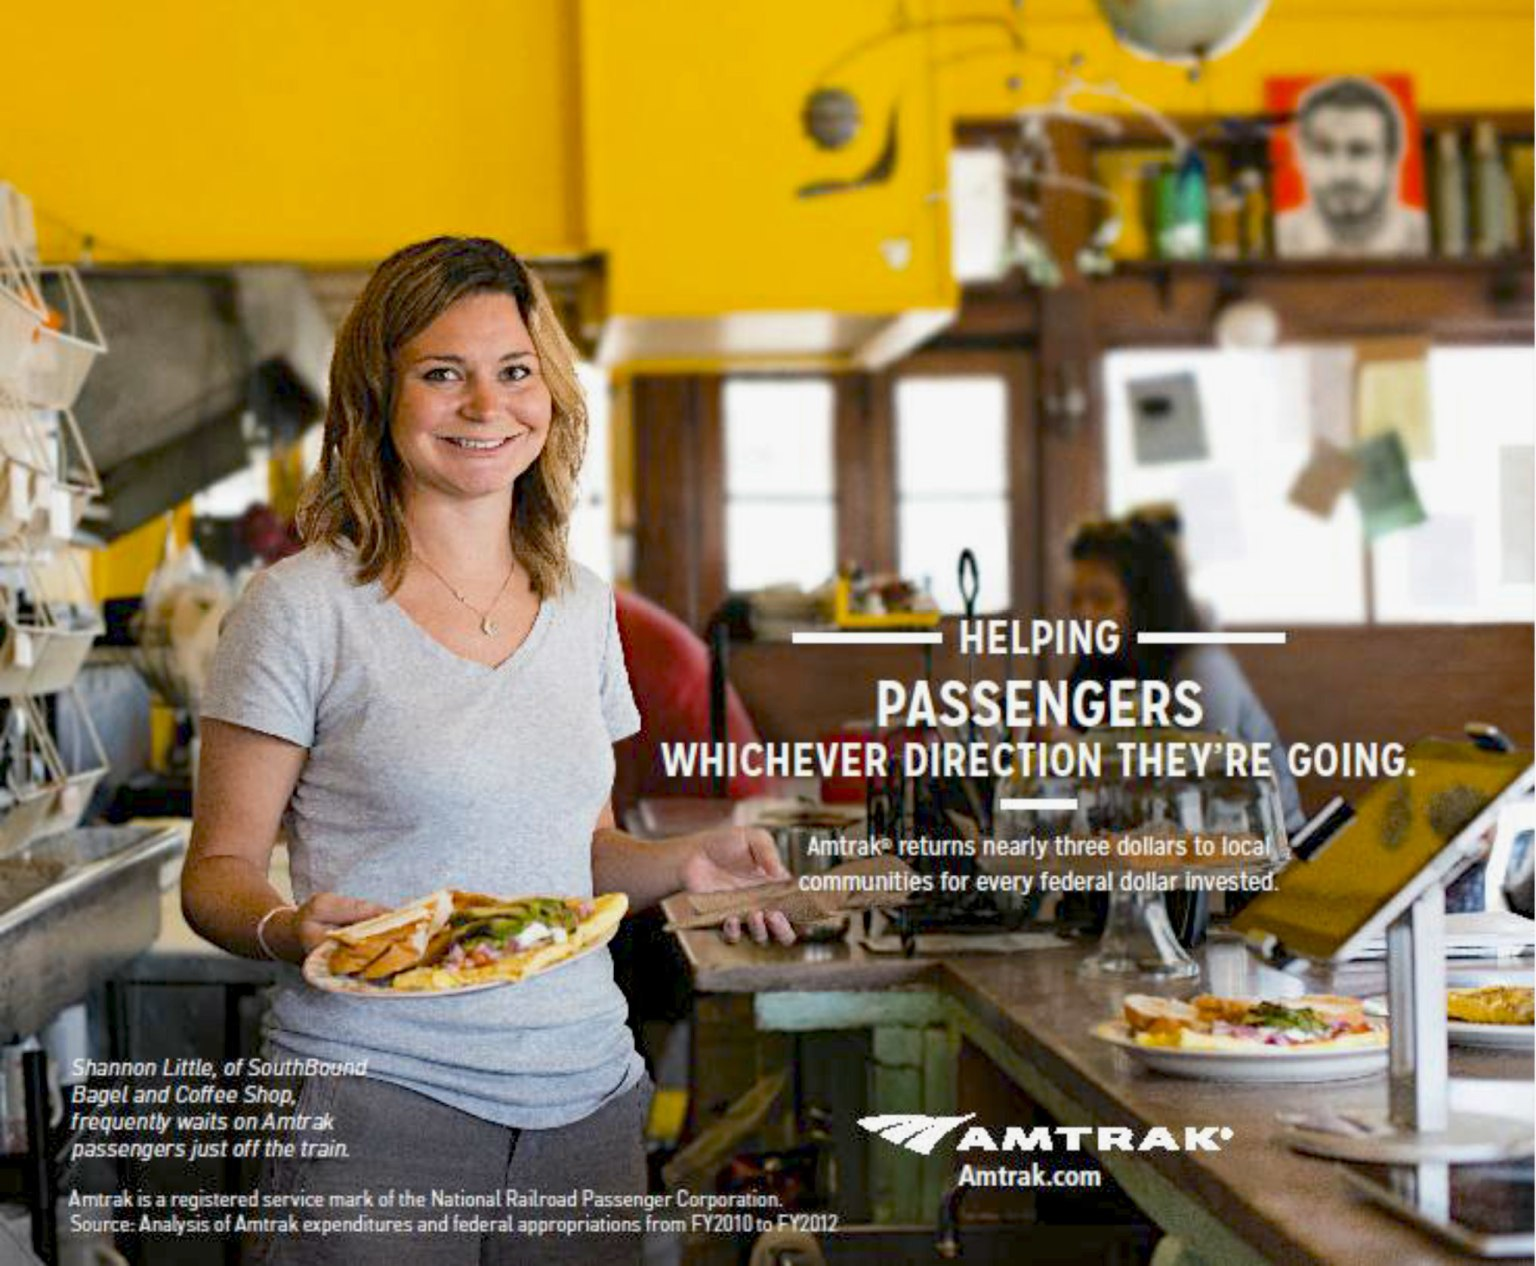 Amtrak Connecting People